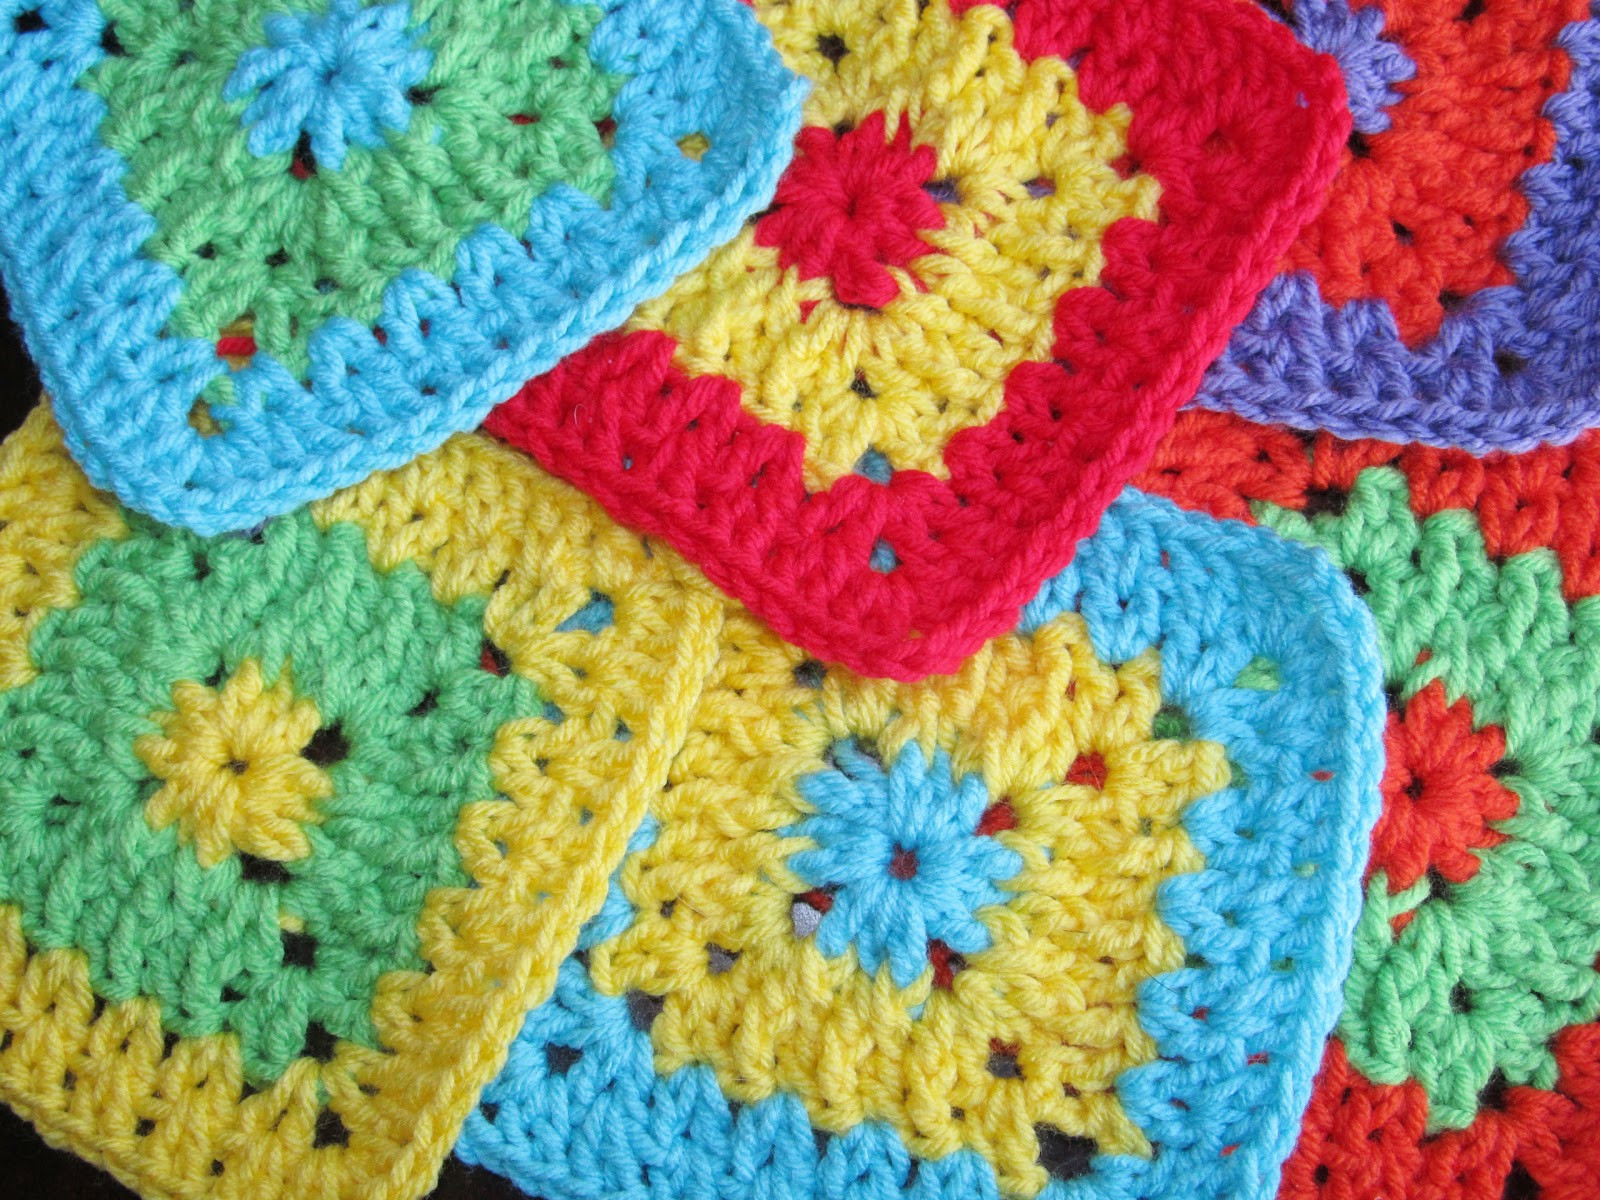 Free Granny Square Afghan Patterns Elegant Smoothfox Crochet and Knit Smoothfox Cool 2b Square Of Amazing 46 Pictures Free Granny Square Afghan Patterns